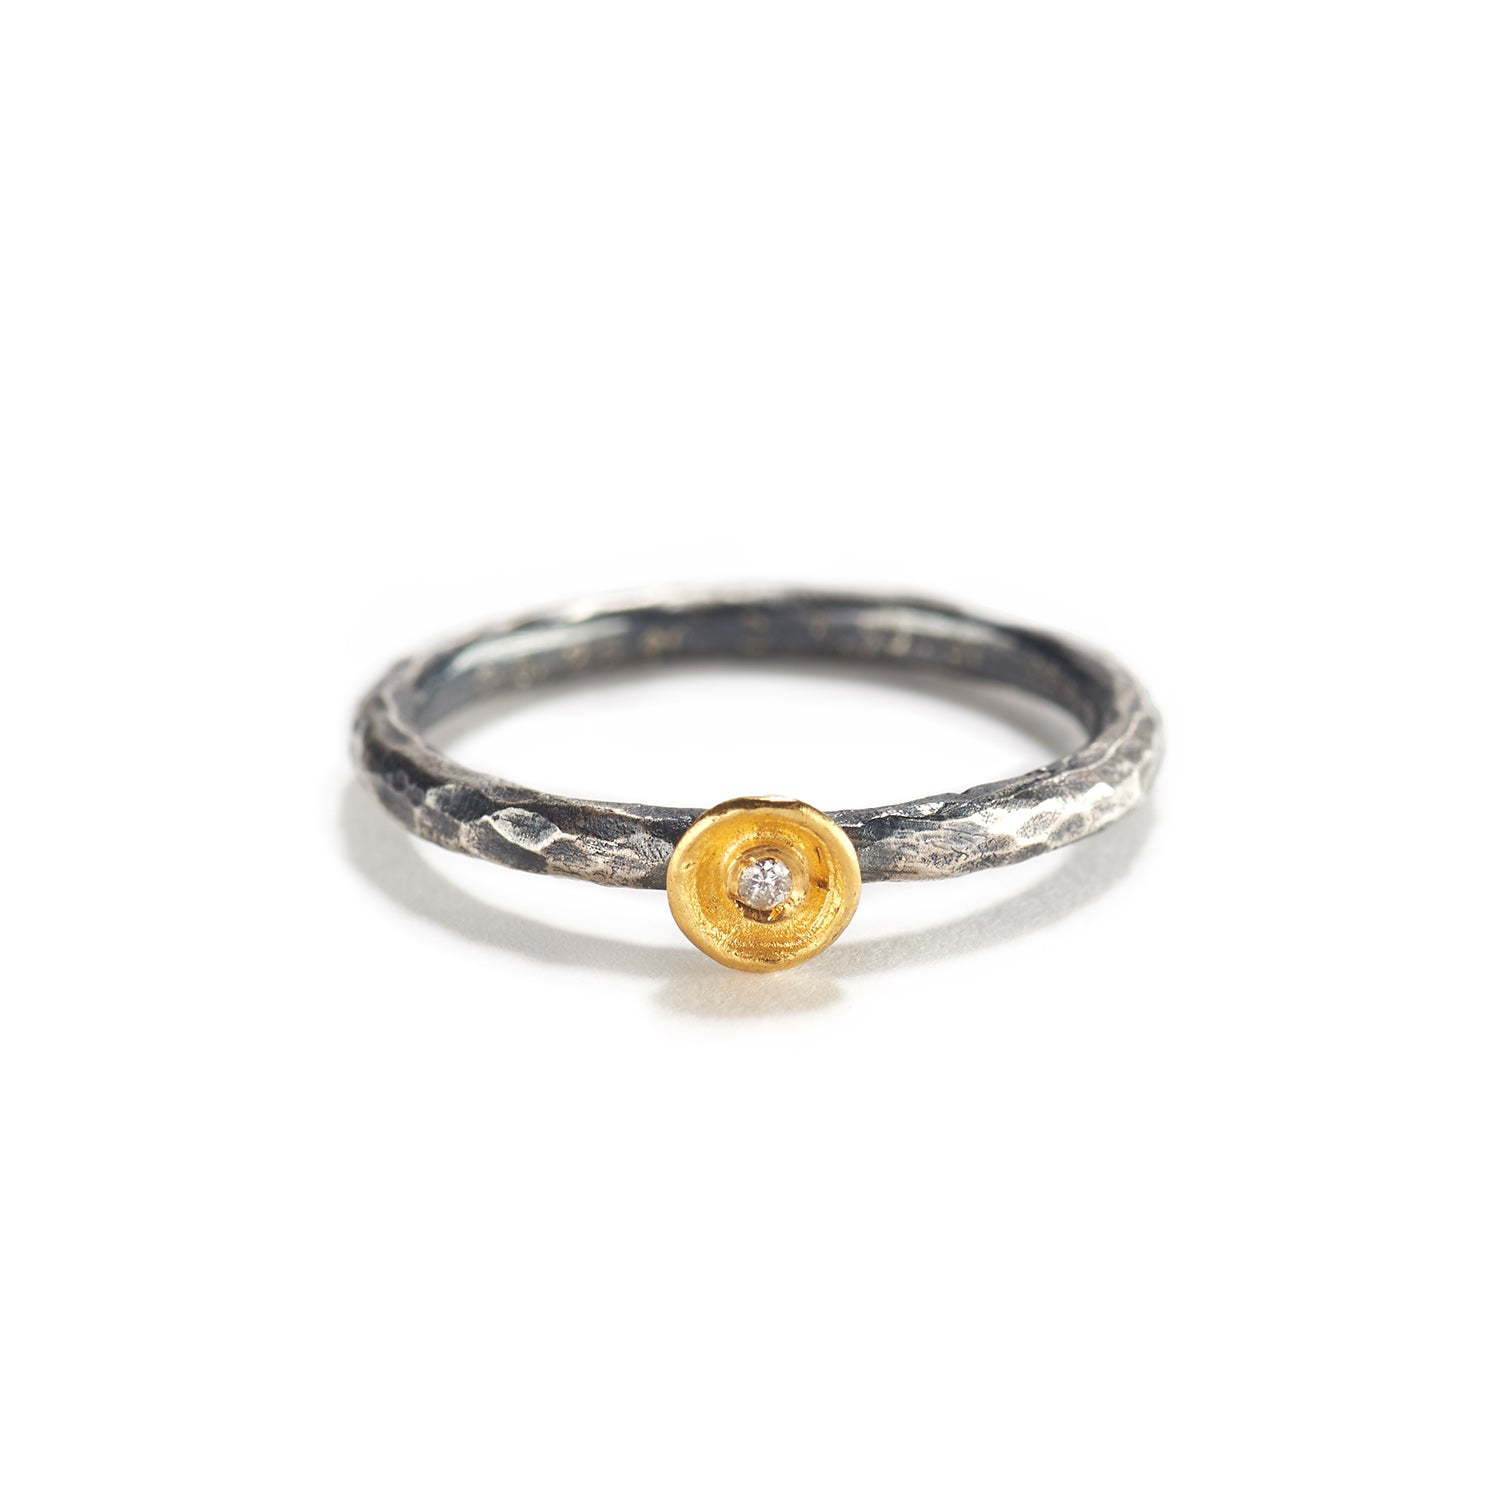 Gold and Silver Ring with Small Diamond